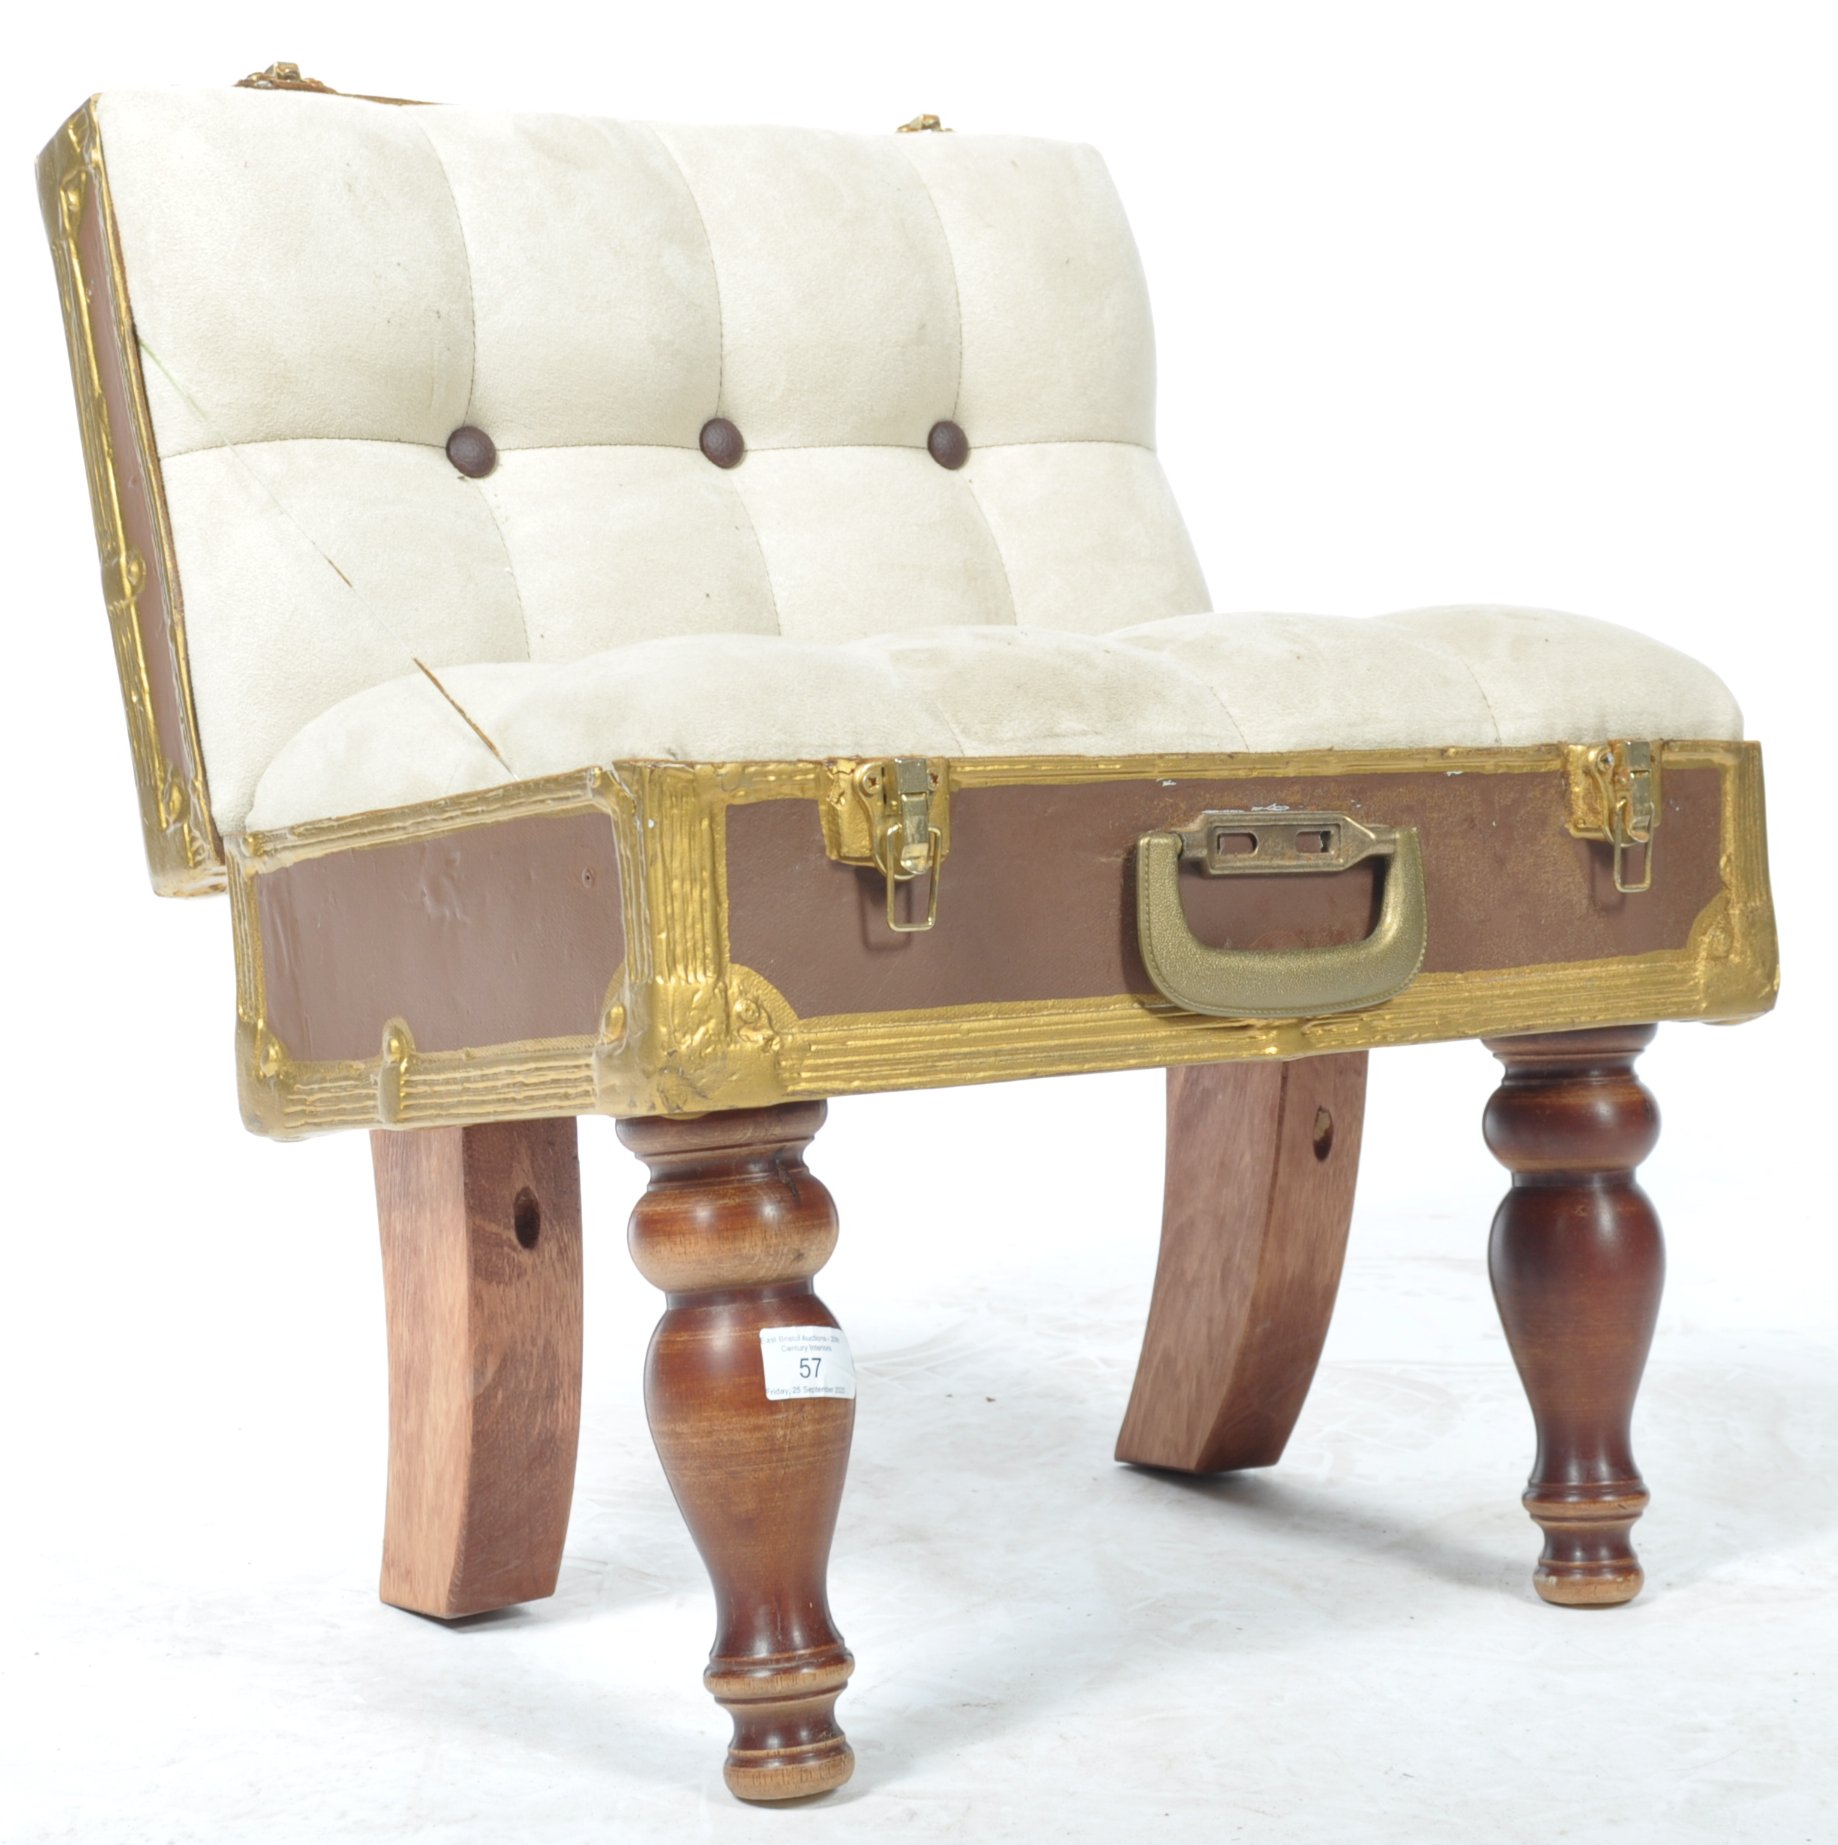 Lot 57 - UNUSUAL BUTTON BACK CHAIR IN THE FORM A TRAVEL SUITCASE